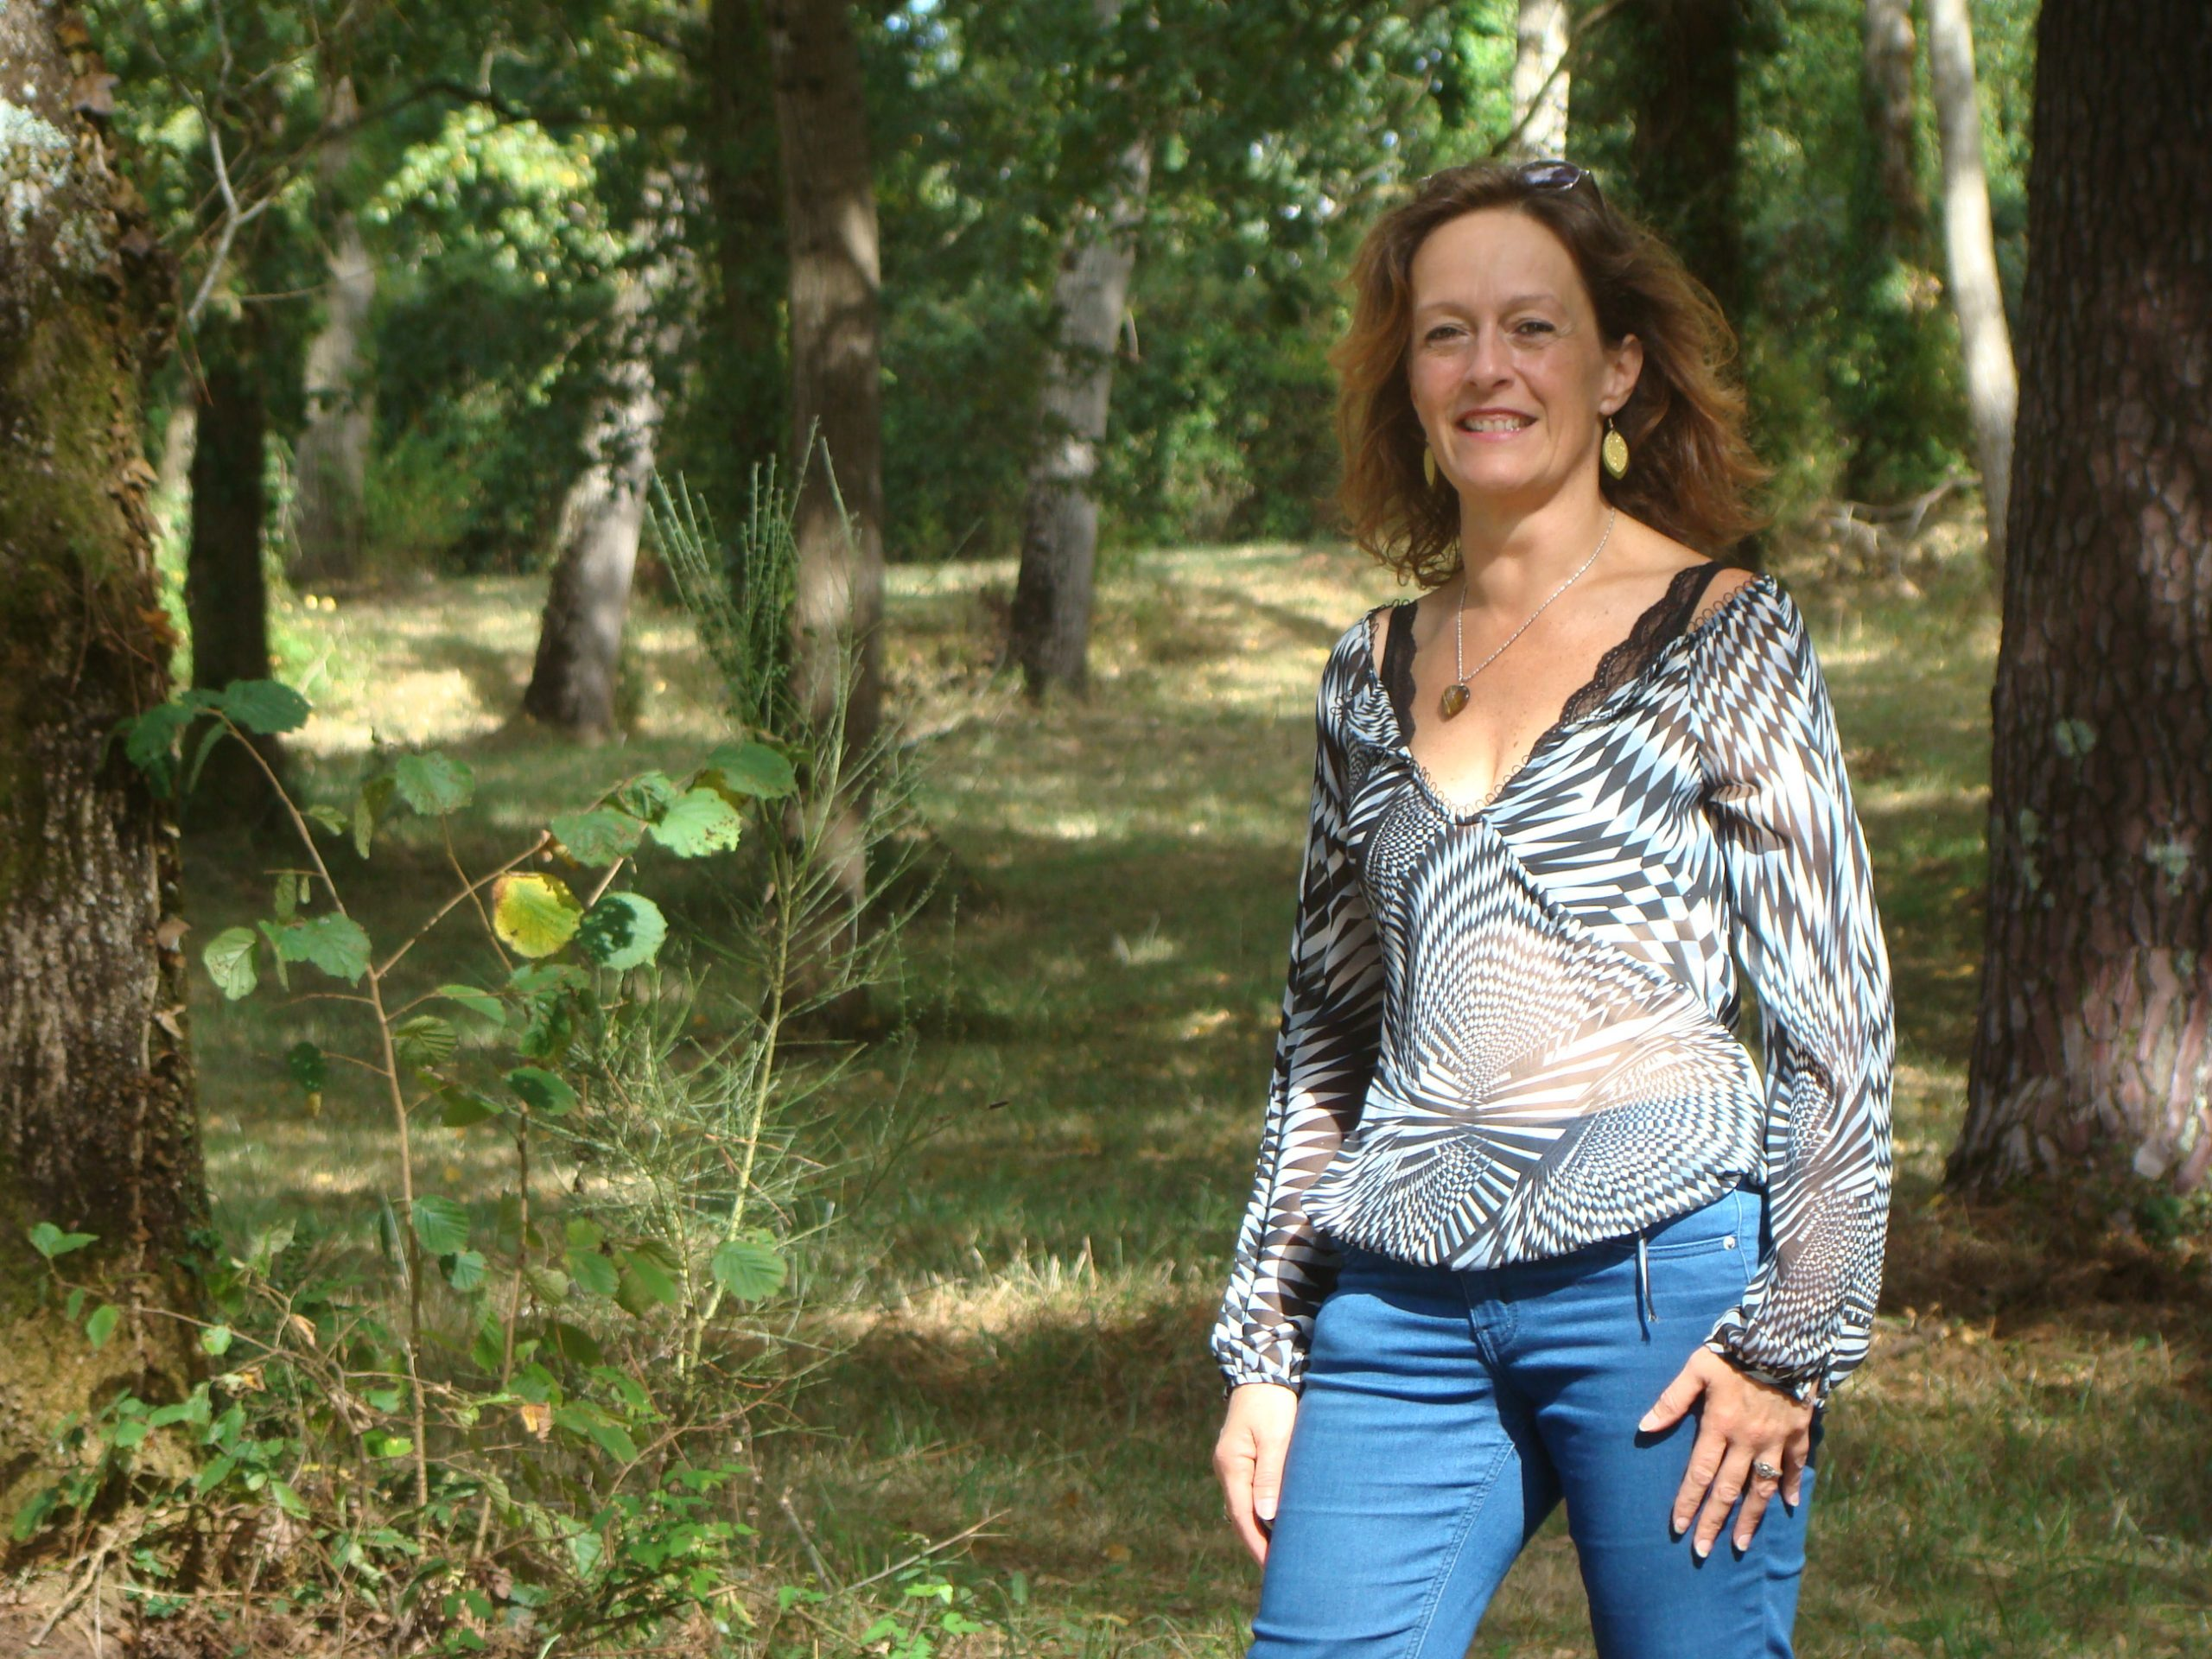 woman standing in a forest